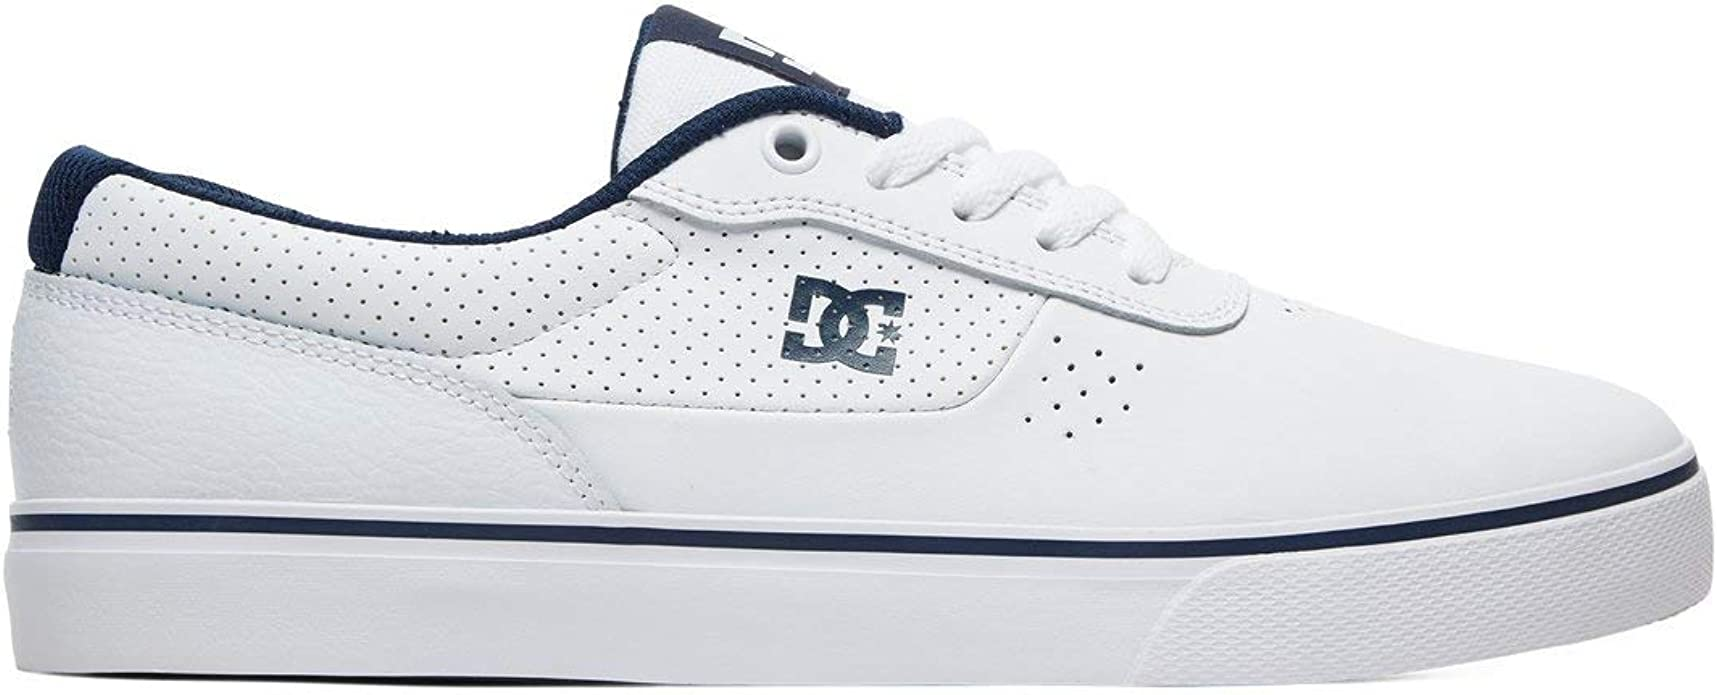 DC Shoes Switch Sneakers Herren Weiß/Blau